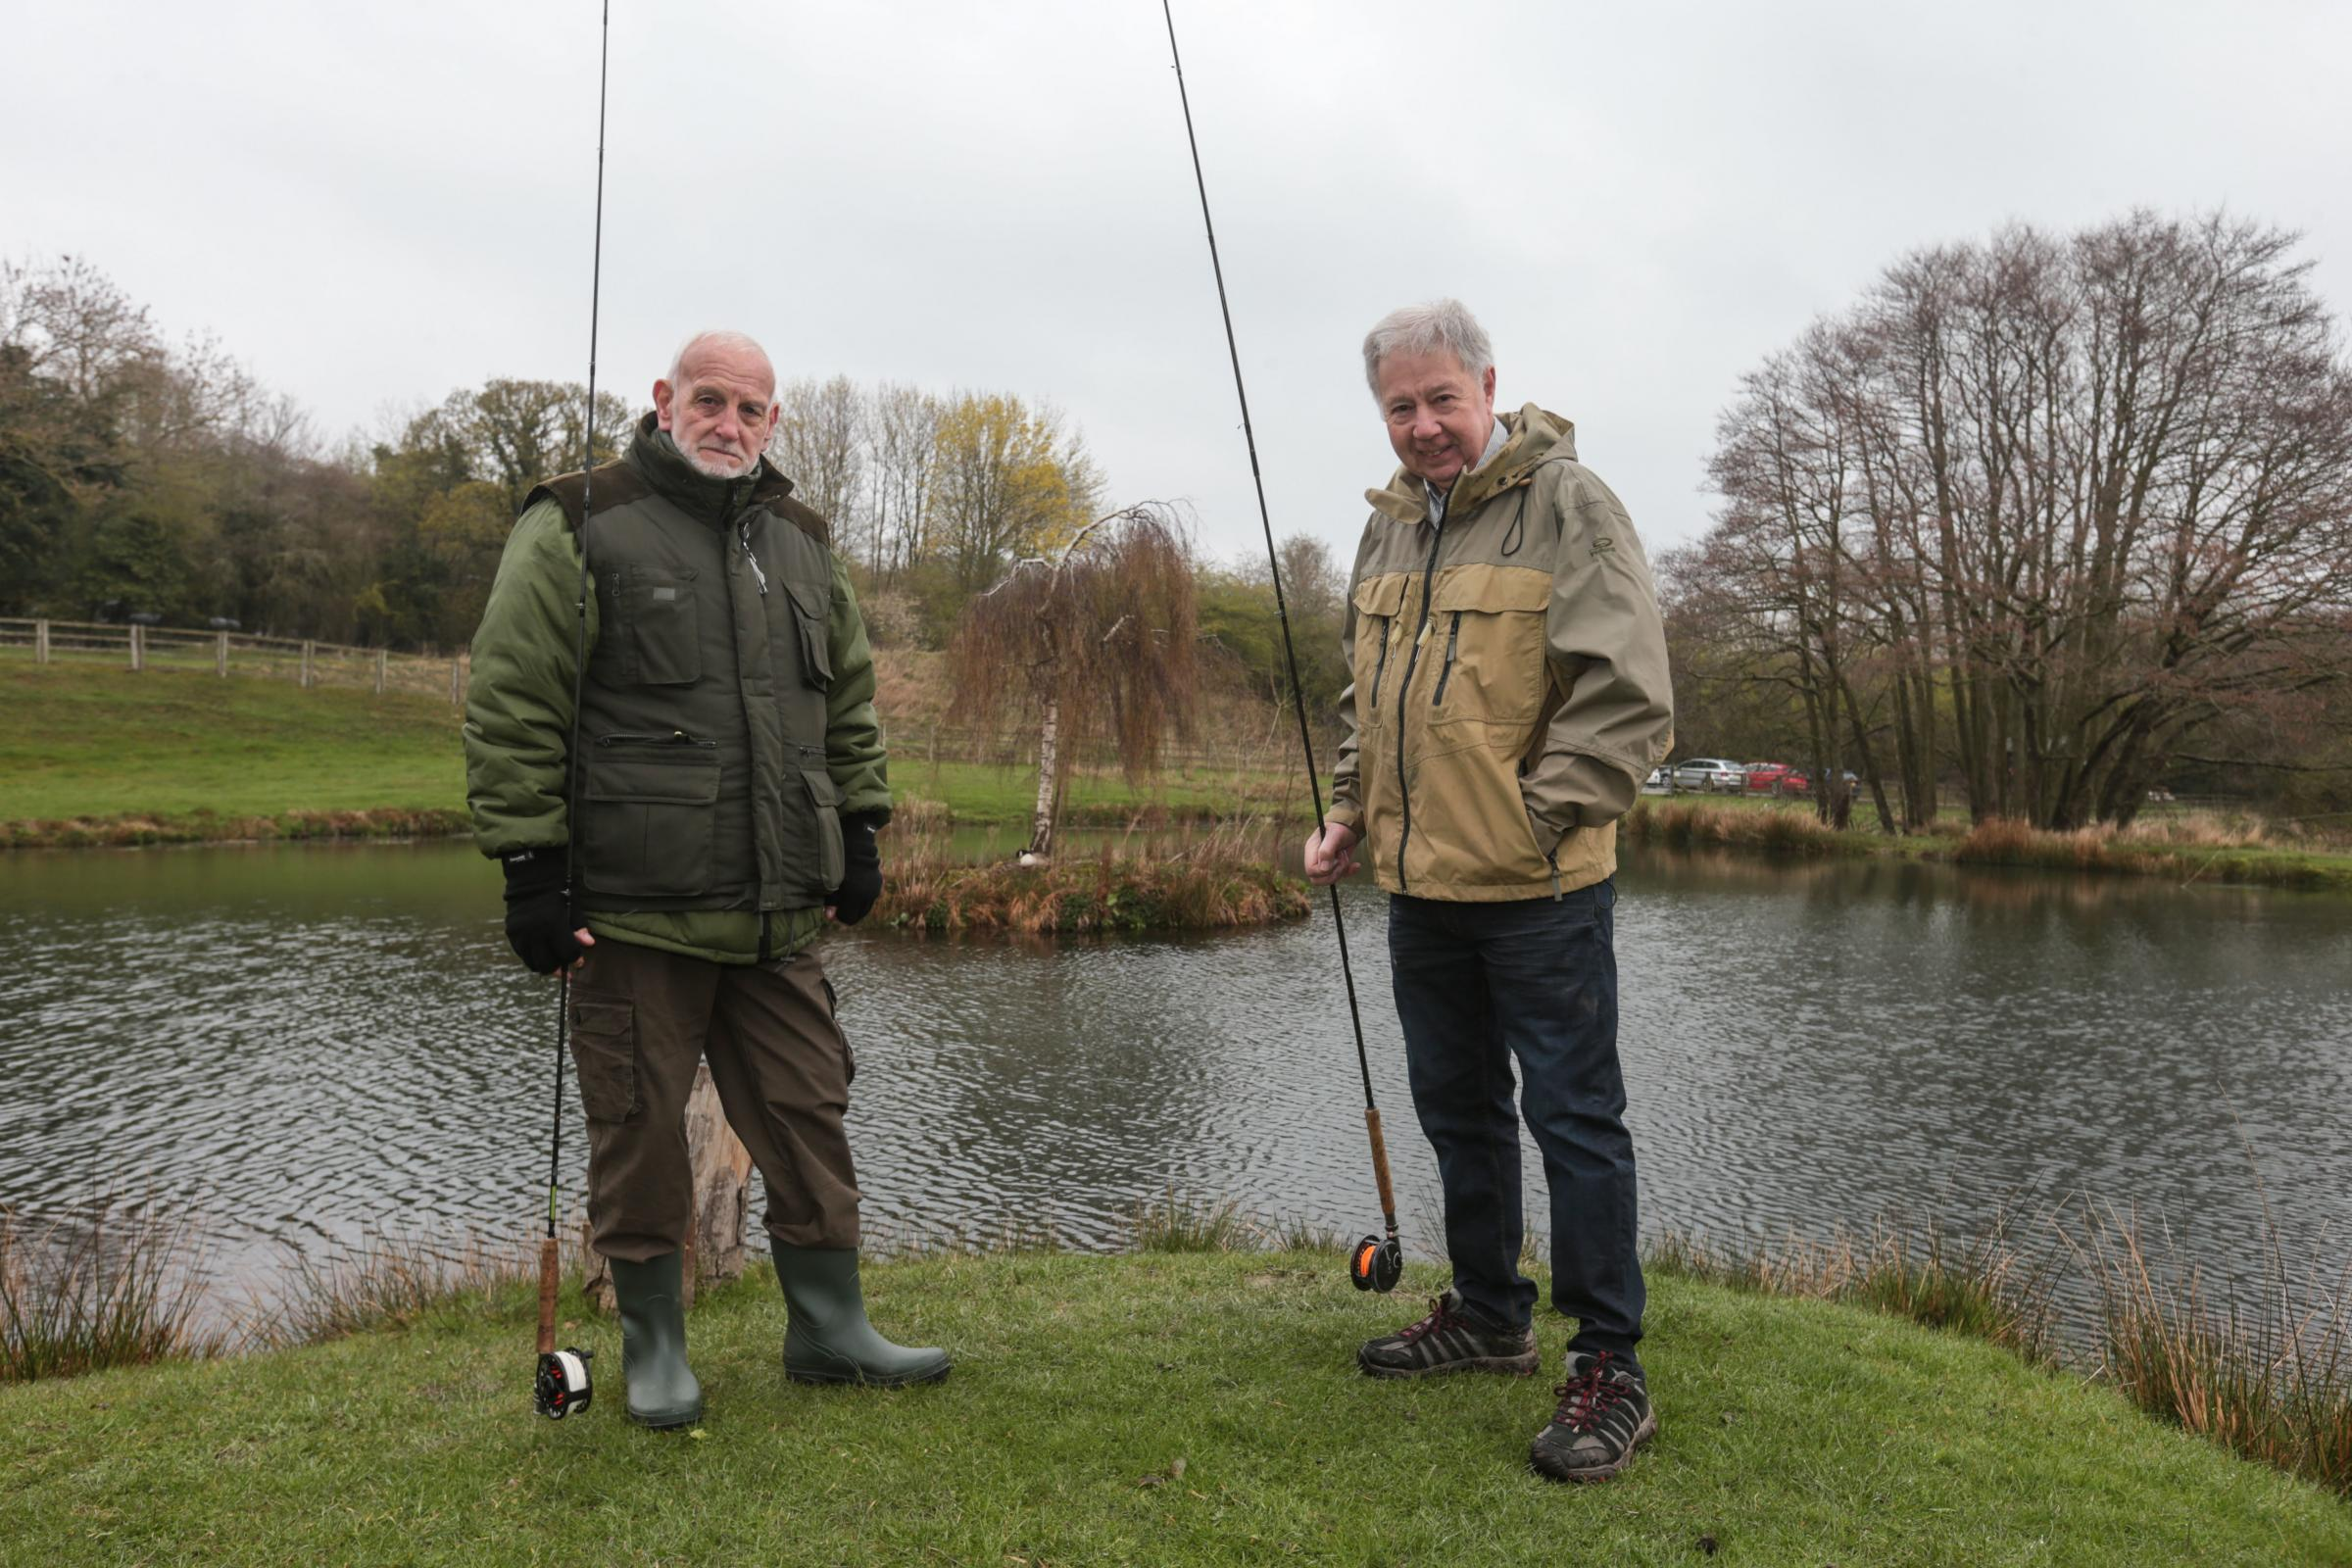 Mold Fly Fishing Club's call for new members